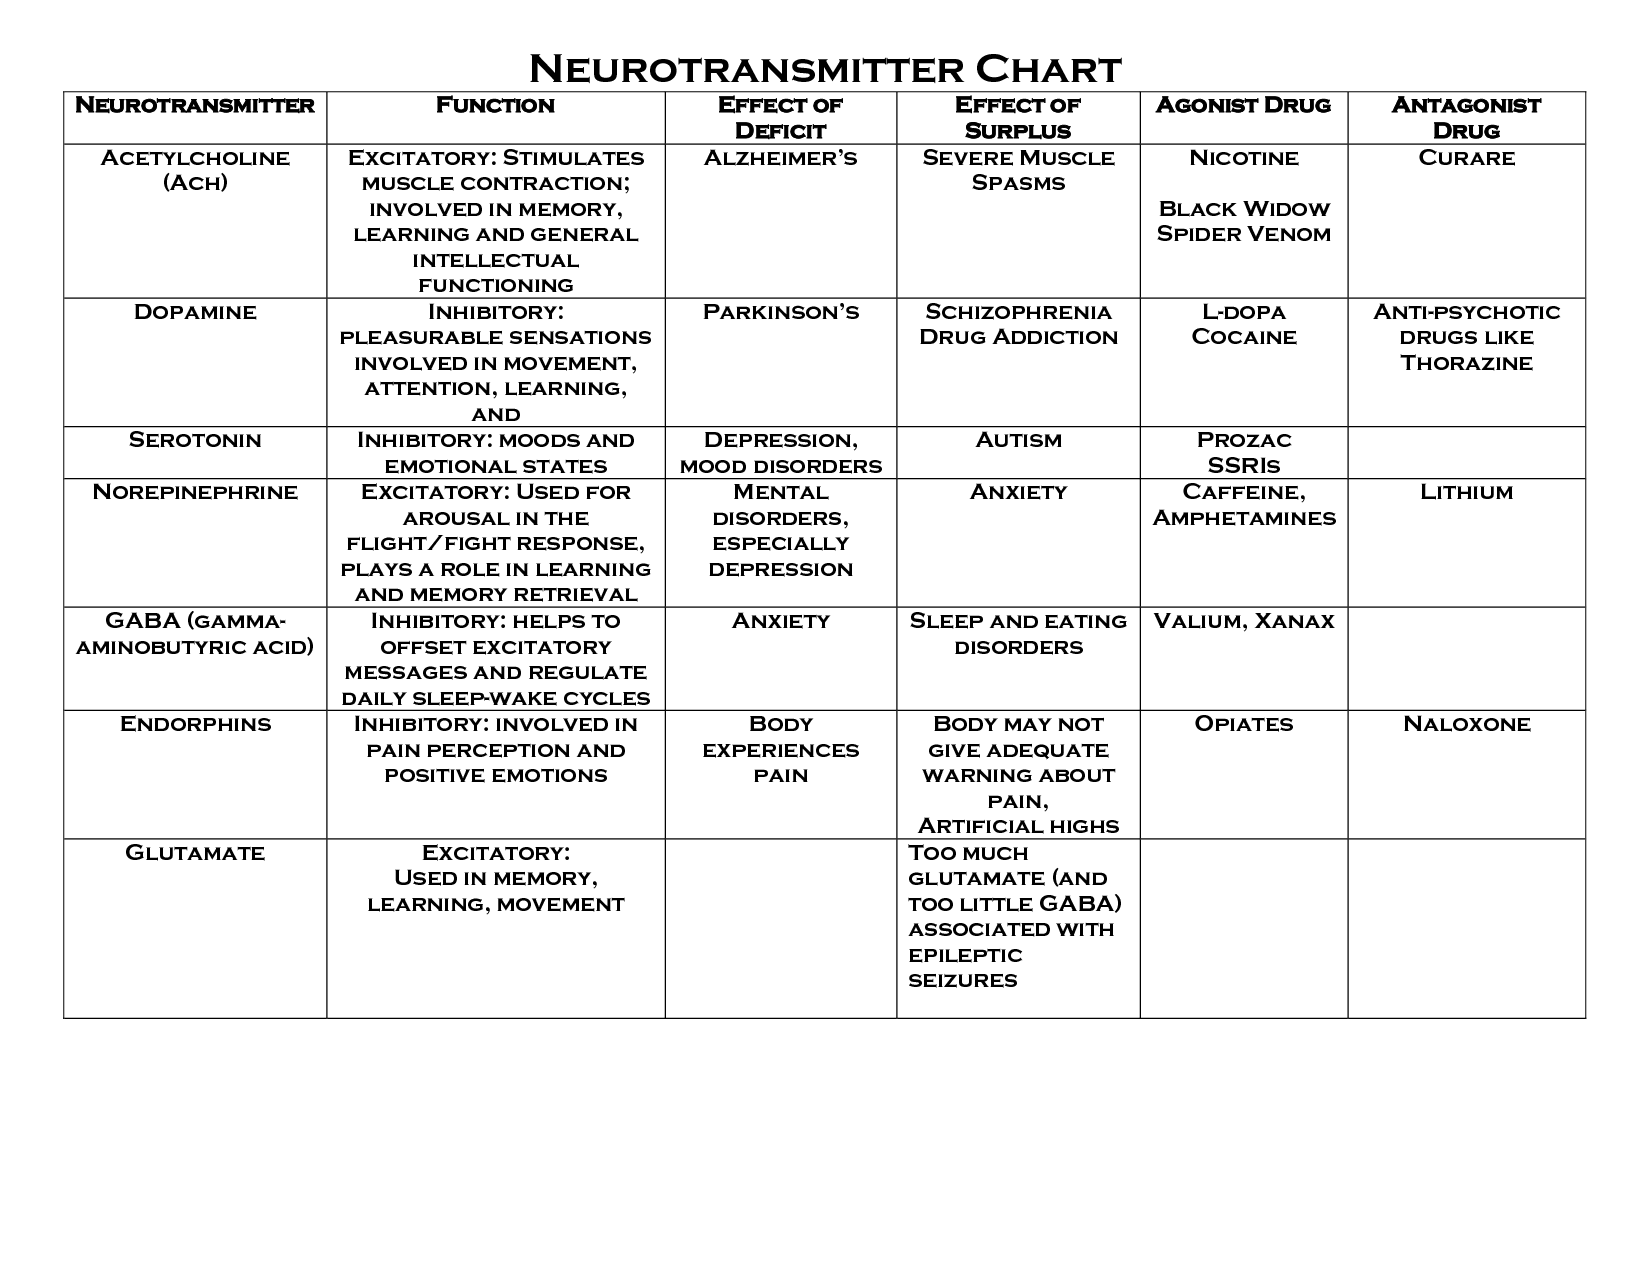 neurotransmitters and their functions chart | eppp